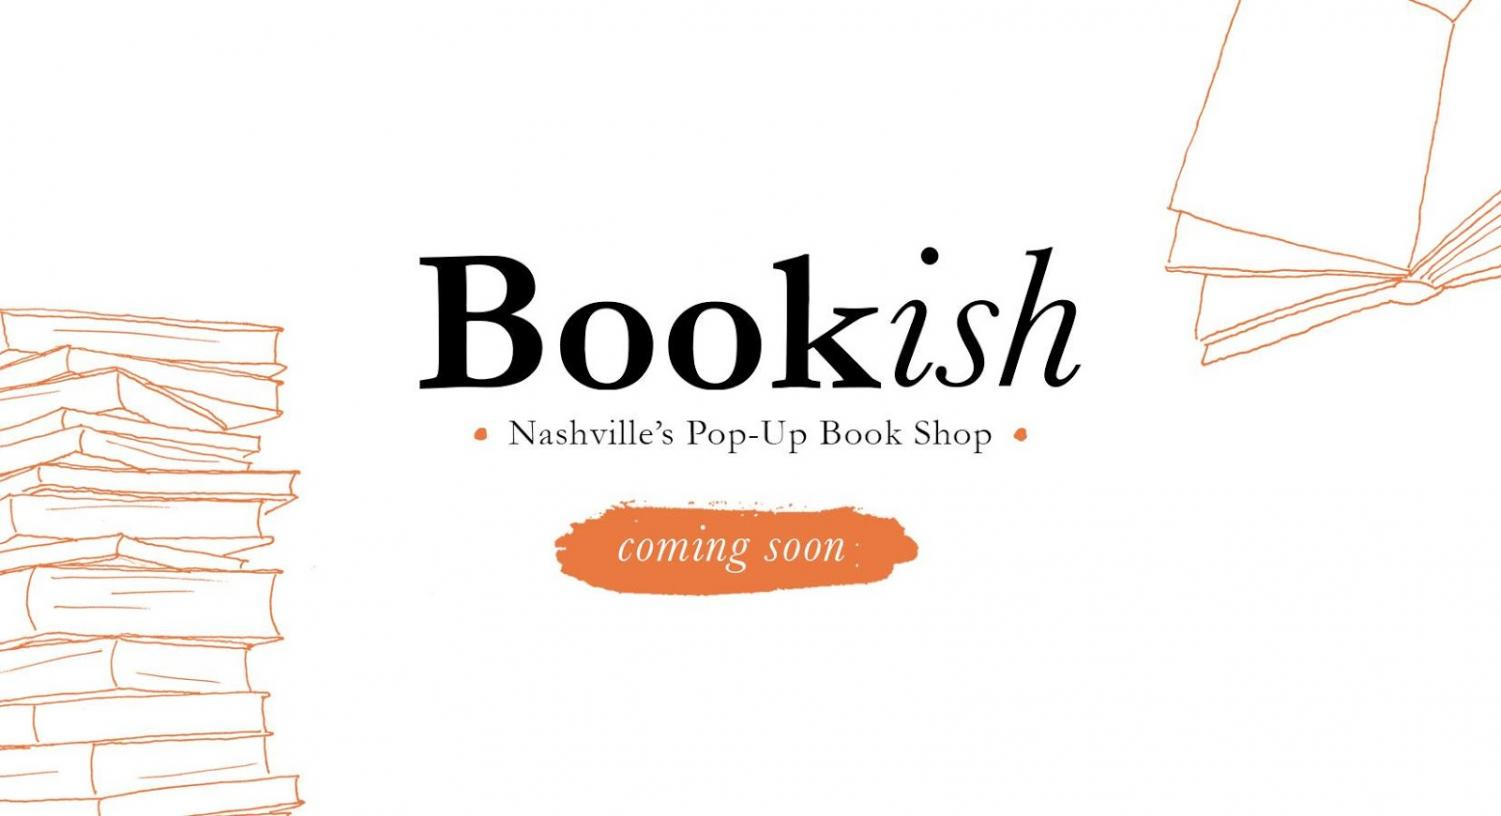 Bookish aims to increase excitement for and access to books. (Photo courtesy Bookish)